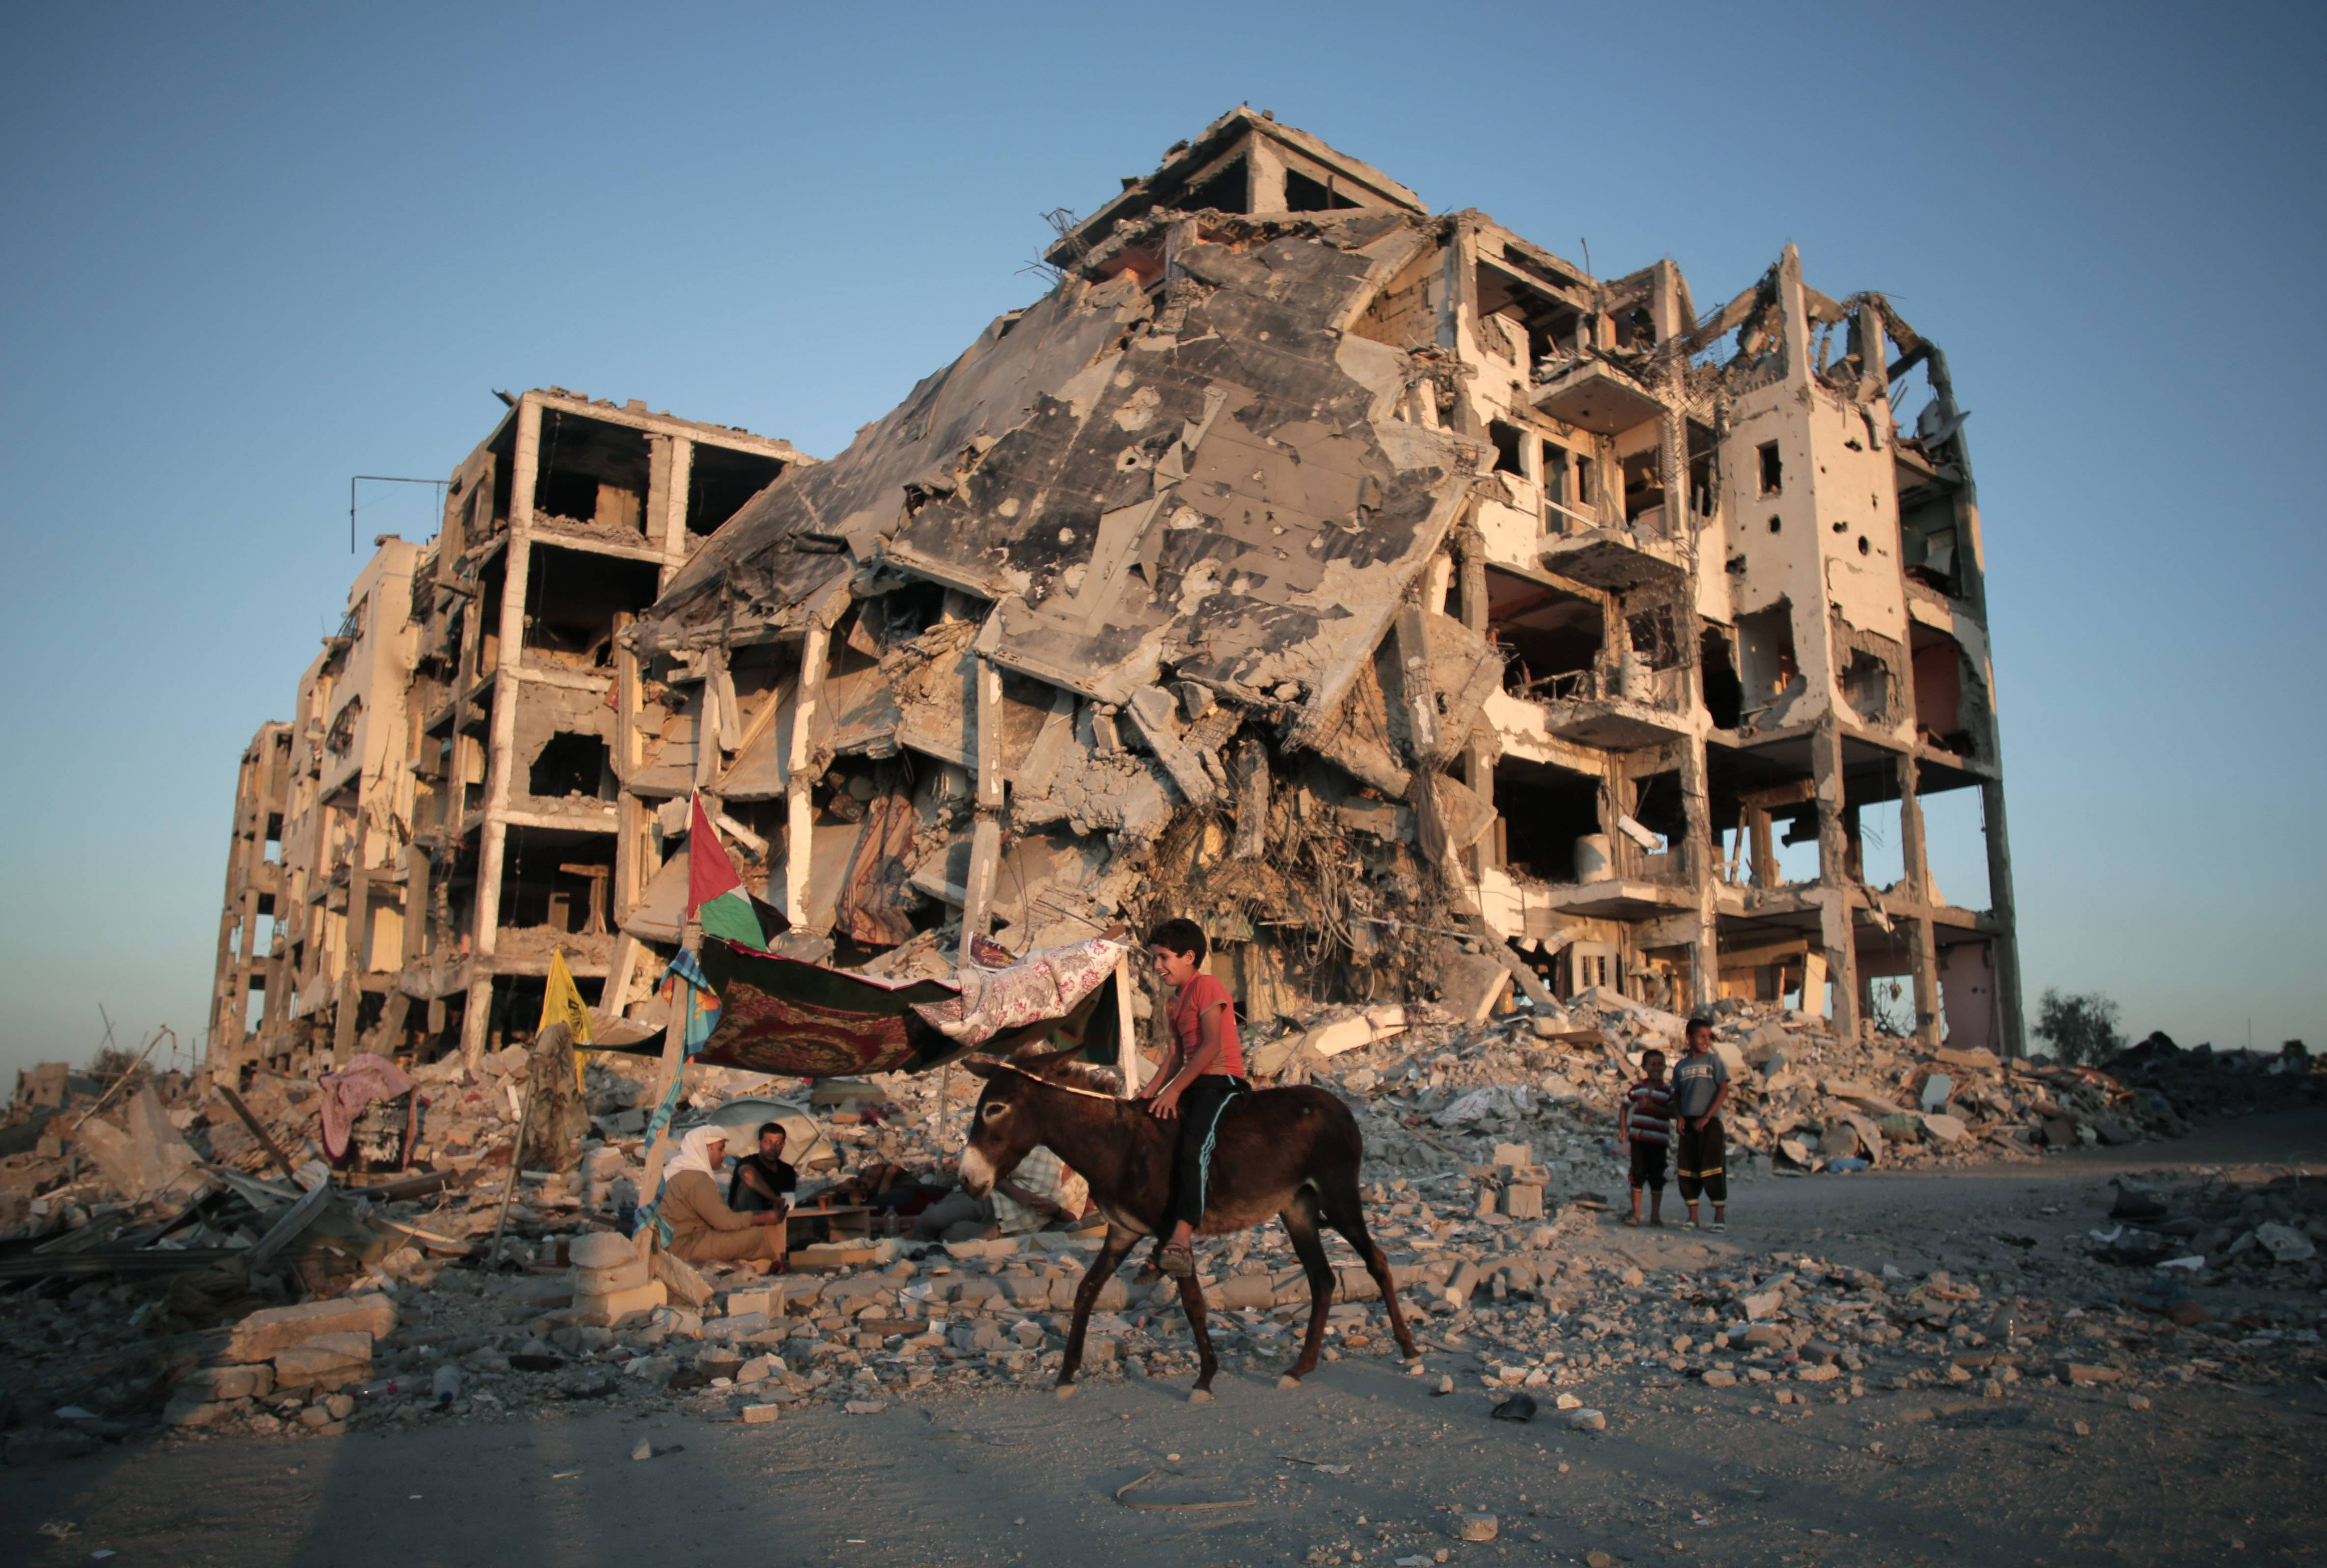 A Palestinian boy rides a donkey next to the destroyed Nada Towers residential neighborhood in the town of Beit Lahiya, northern Gaza Strip, Monday, Aug. 11, 2014.